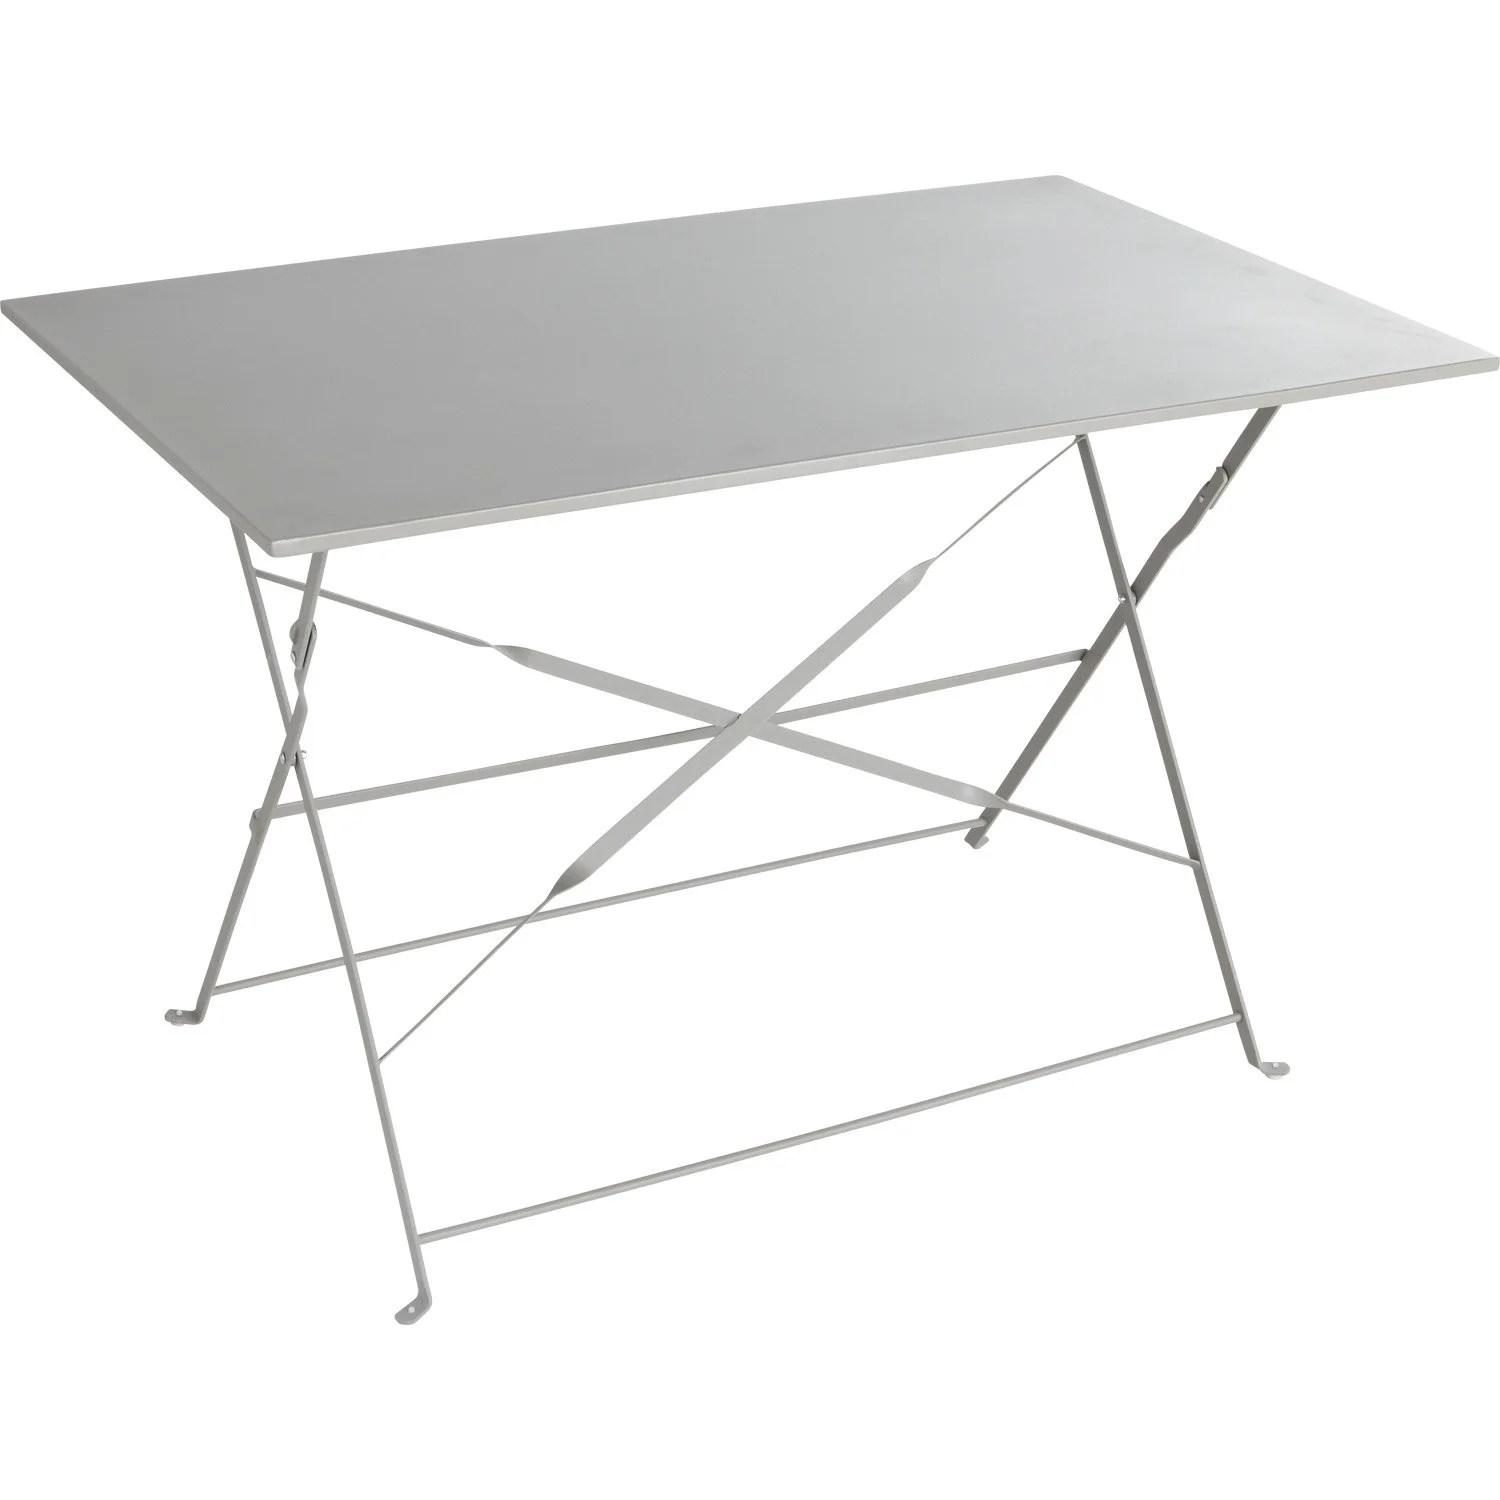 Table Pliable Leroy Merlin Table De Jardin Naterial Flore Rectangulaire Gris 4